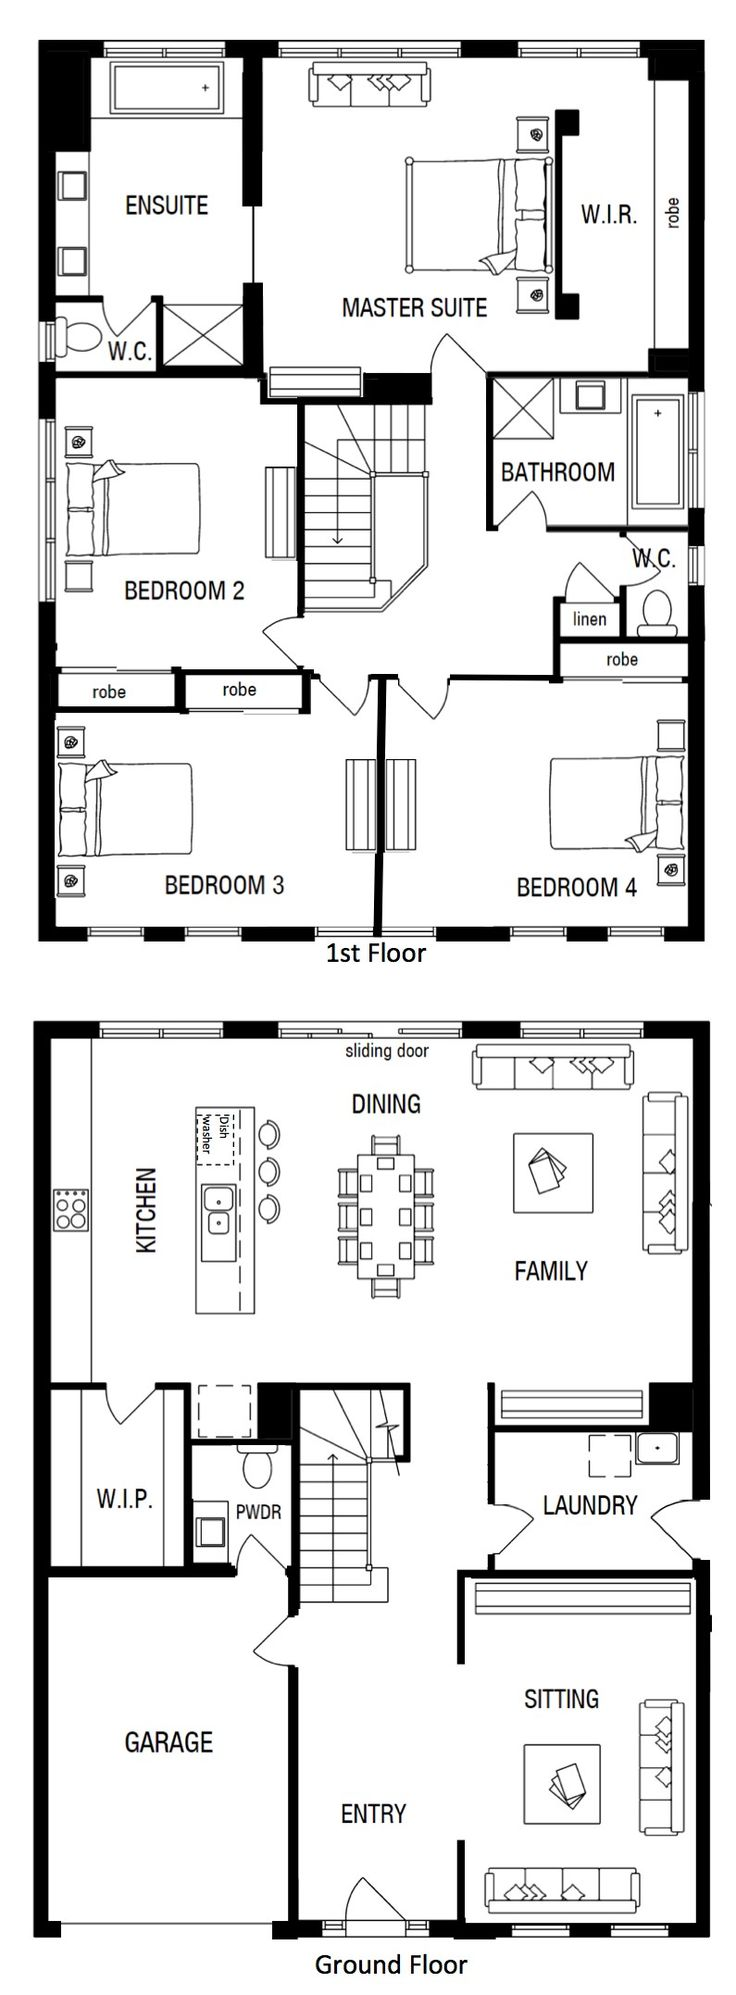 Newhaven 33 by Metricon (Modified). 4 bedroom. Open plan kitchen dining living room. Walk through laundry.